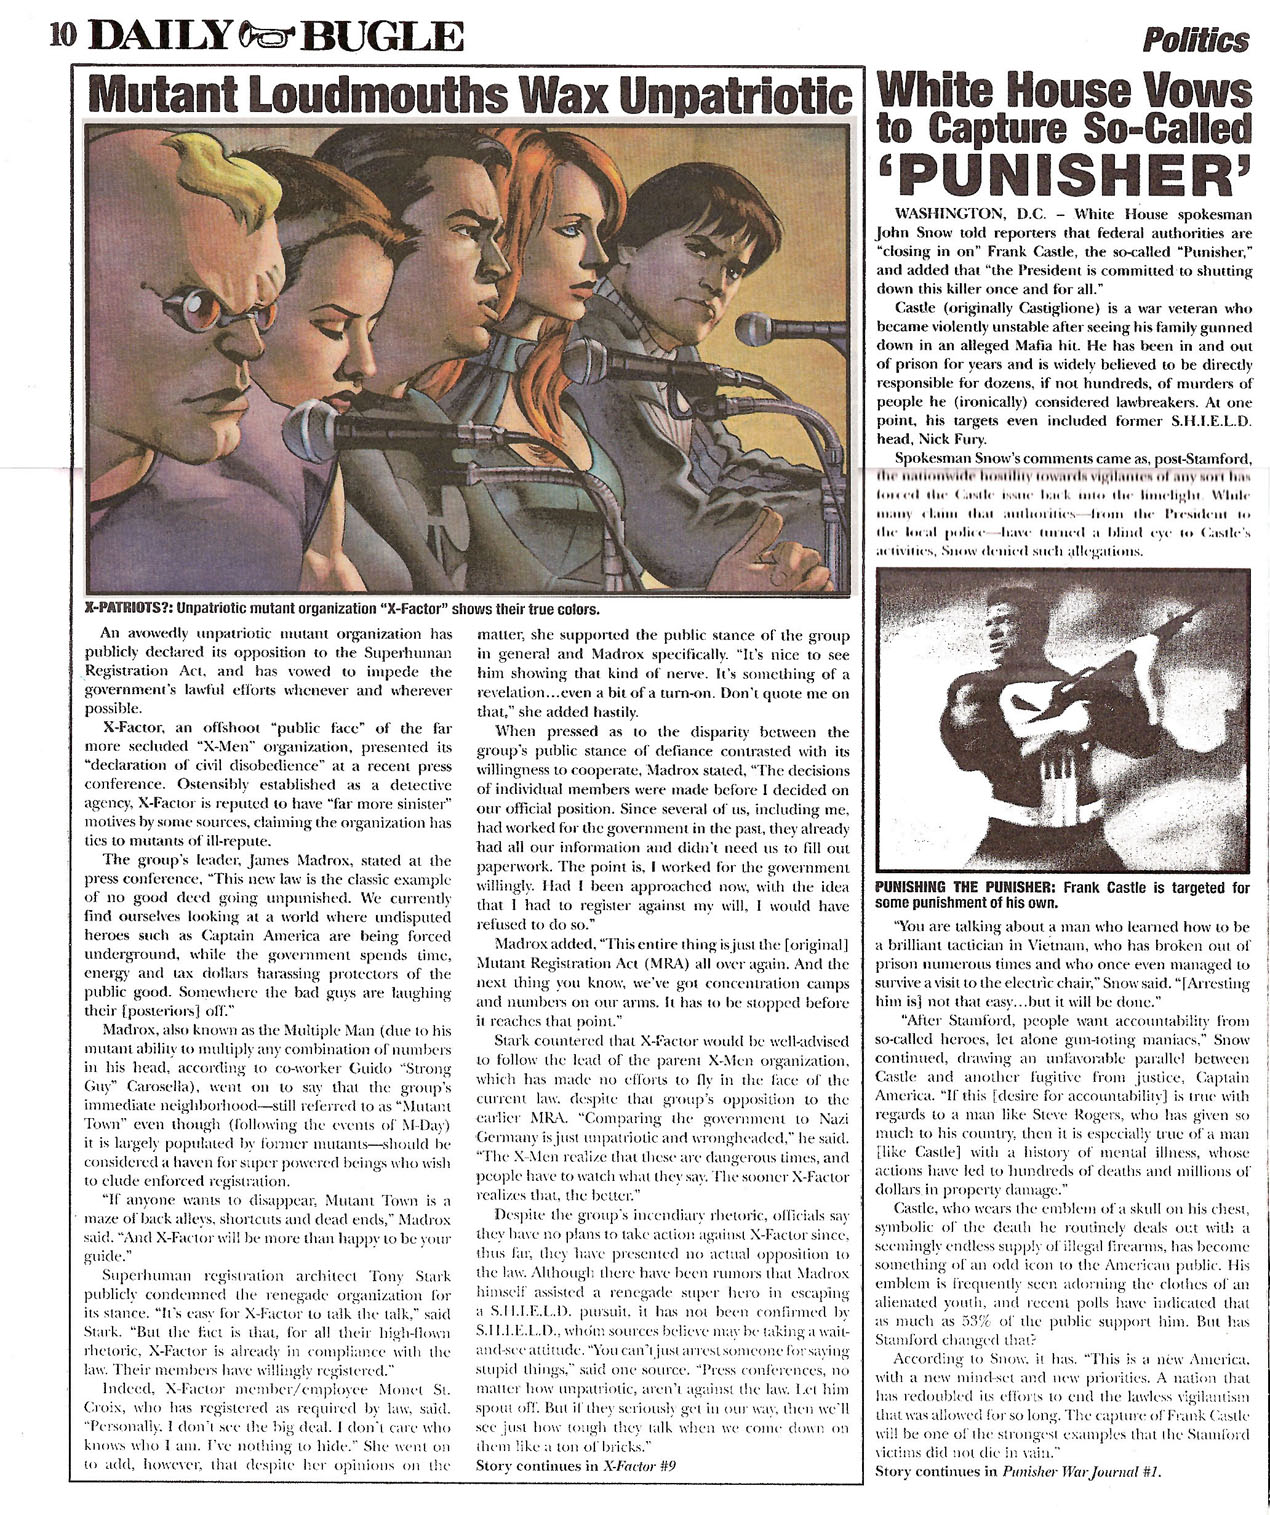 Read online Daily Bugle (2006) comic -  Issue #0 - 10